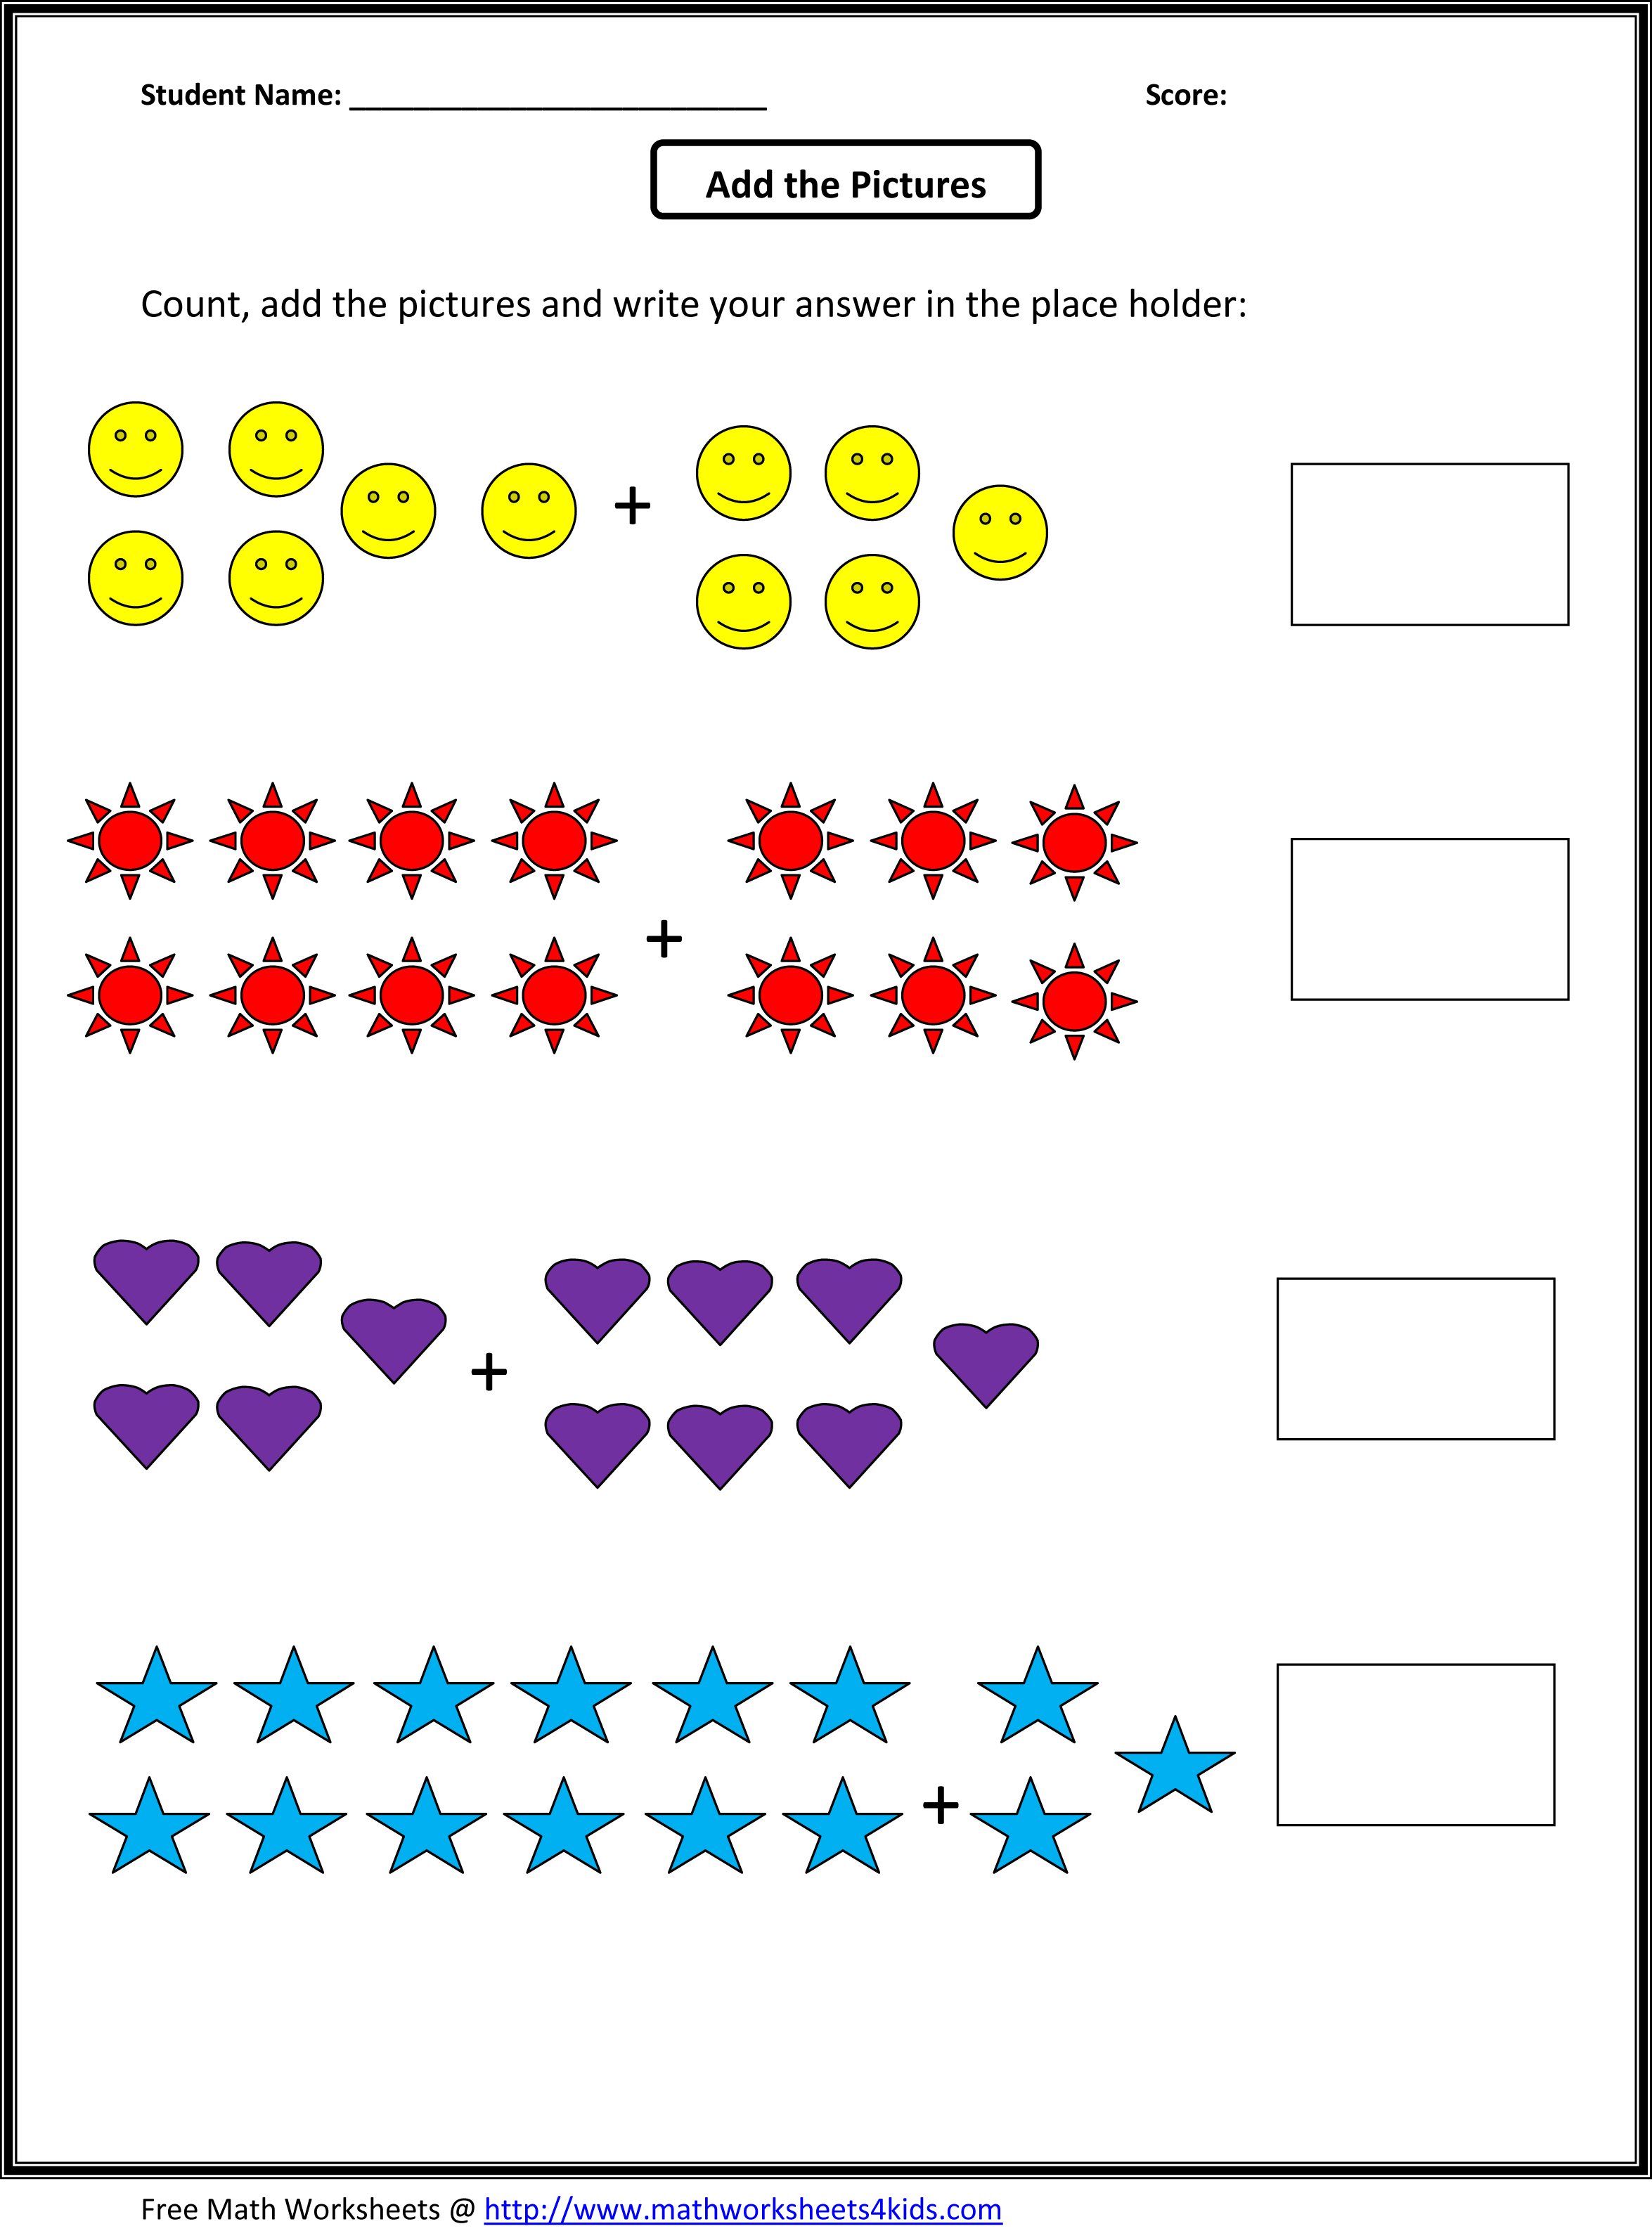 Proatmealus  Picturesque Grade  Maths Worksheet  Reocurent With Heavenly Math Worksheets For St Grade Free  Reocurent With Beautiful  Problem Addition Worksheets Also Introduction Worksheet For Students In Addition Alternative Energy Worksheets And Esl To Be Worksheet As Well As Beginning Music Worksheets Additionally Decimals On Number Line Worksheet From Reocurentcom With Proatmealus  Heavenly Grade  Maths Worksheet  Reocurent With Beautiful Math Worksheets For St Grade Free  Reocurent And Picturesque  Problem Addition Worksheets Also Introduction Worksheet For Students In Addition Alternative Energy Worksheets From Reocurentcom